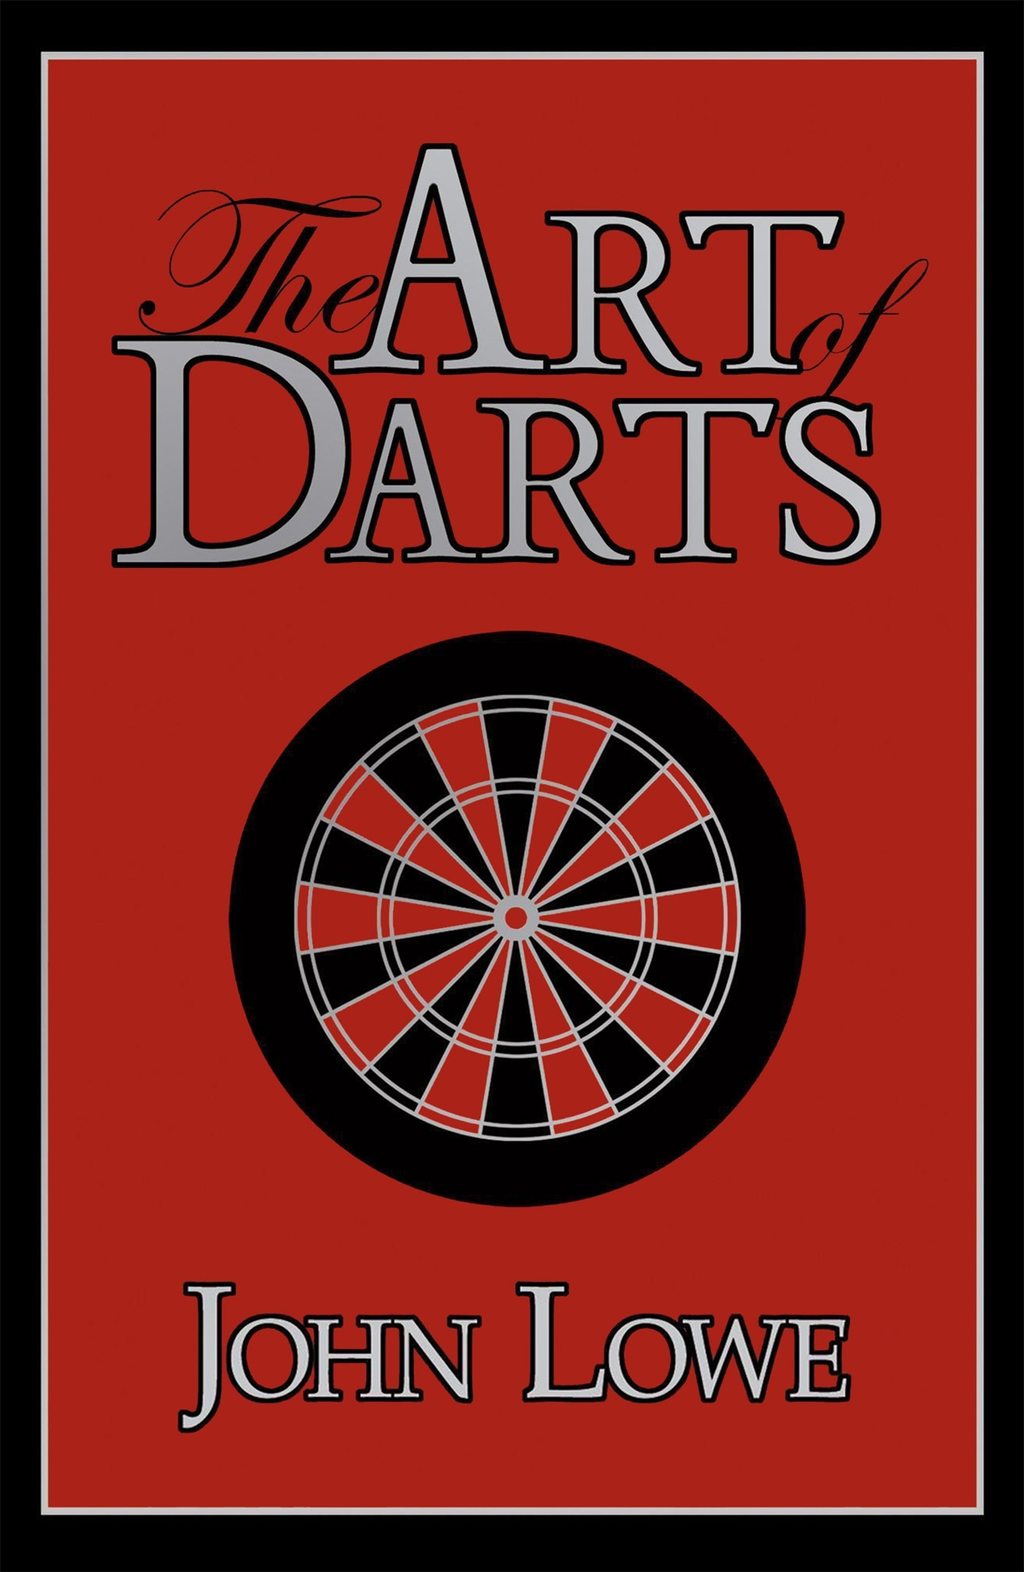 The Art of Darts